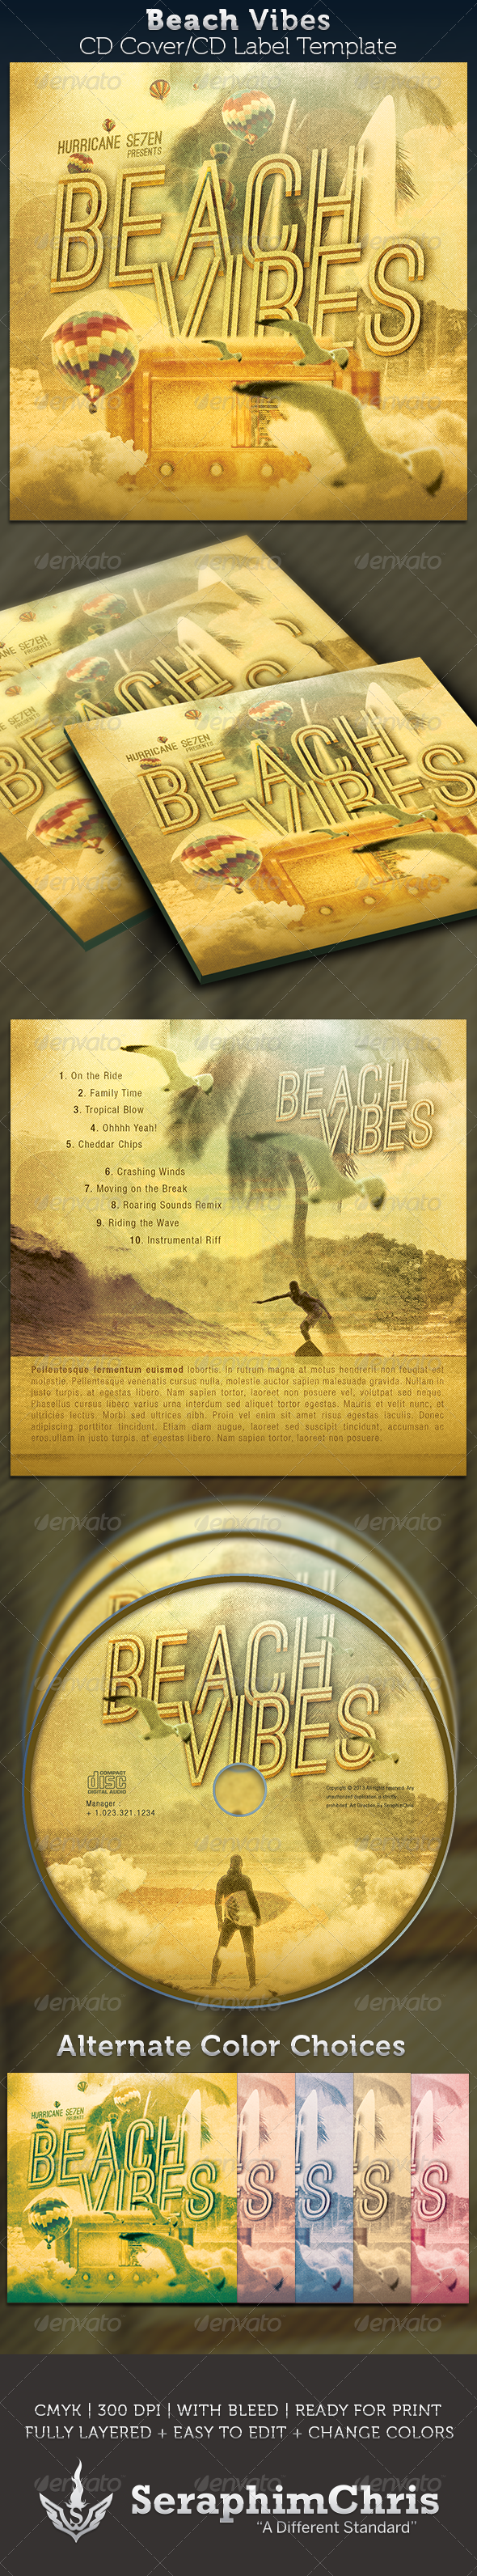 Beach Vibes CD Cover Artwork Template